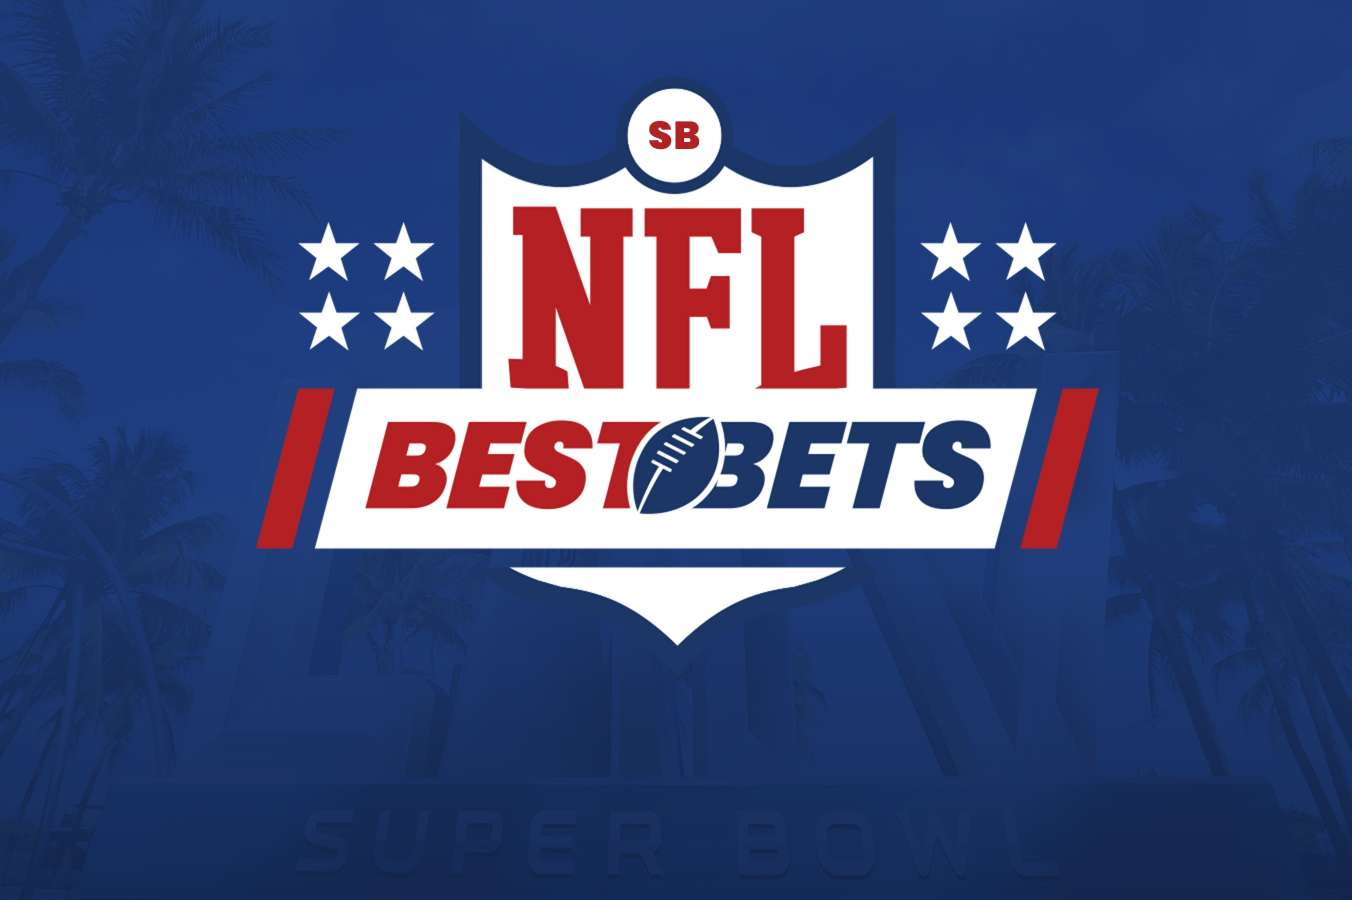 Super betting tips line movement in sports betting